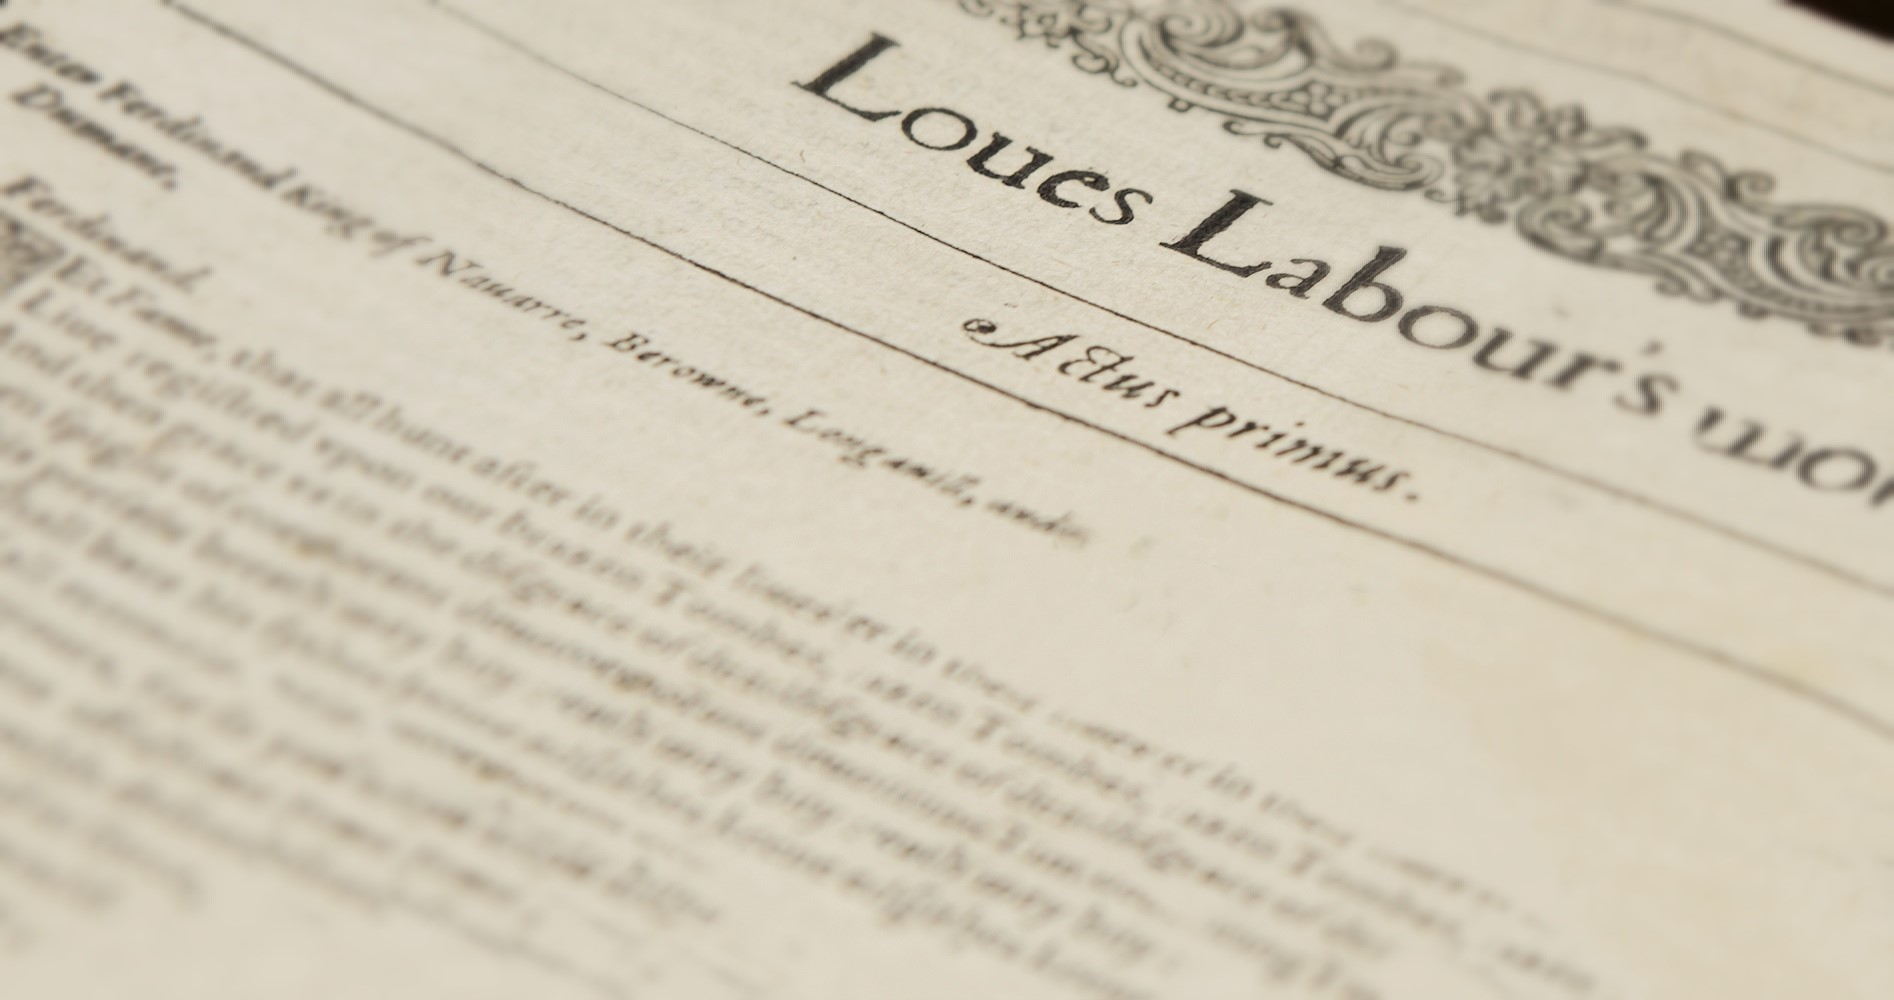 A first page from an old quarto text, with the title: Loues Labours wonne